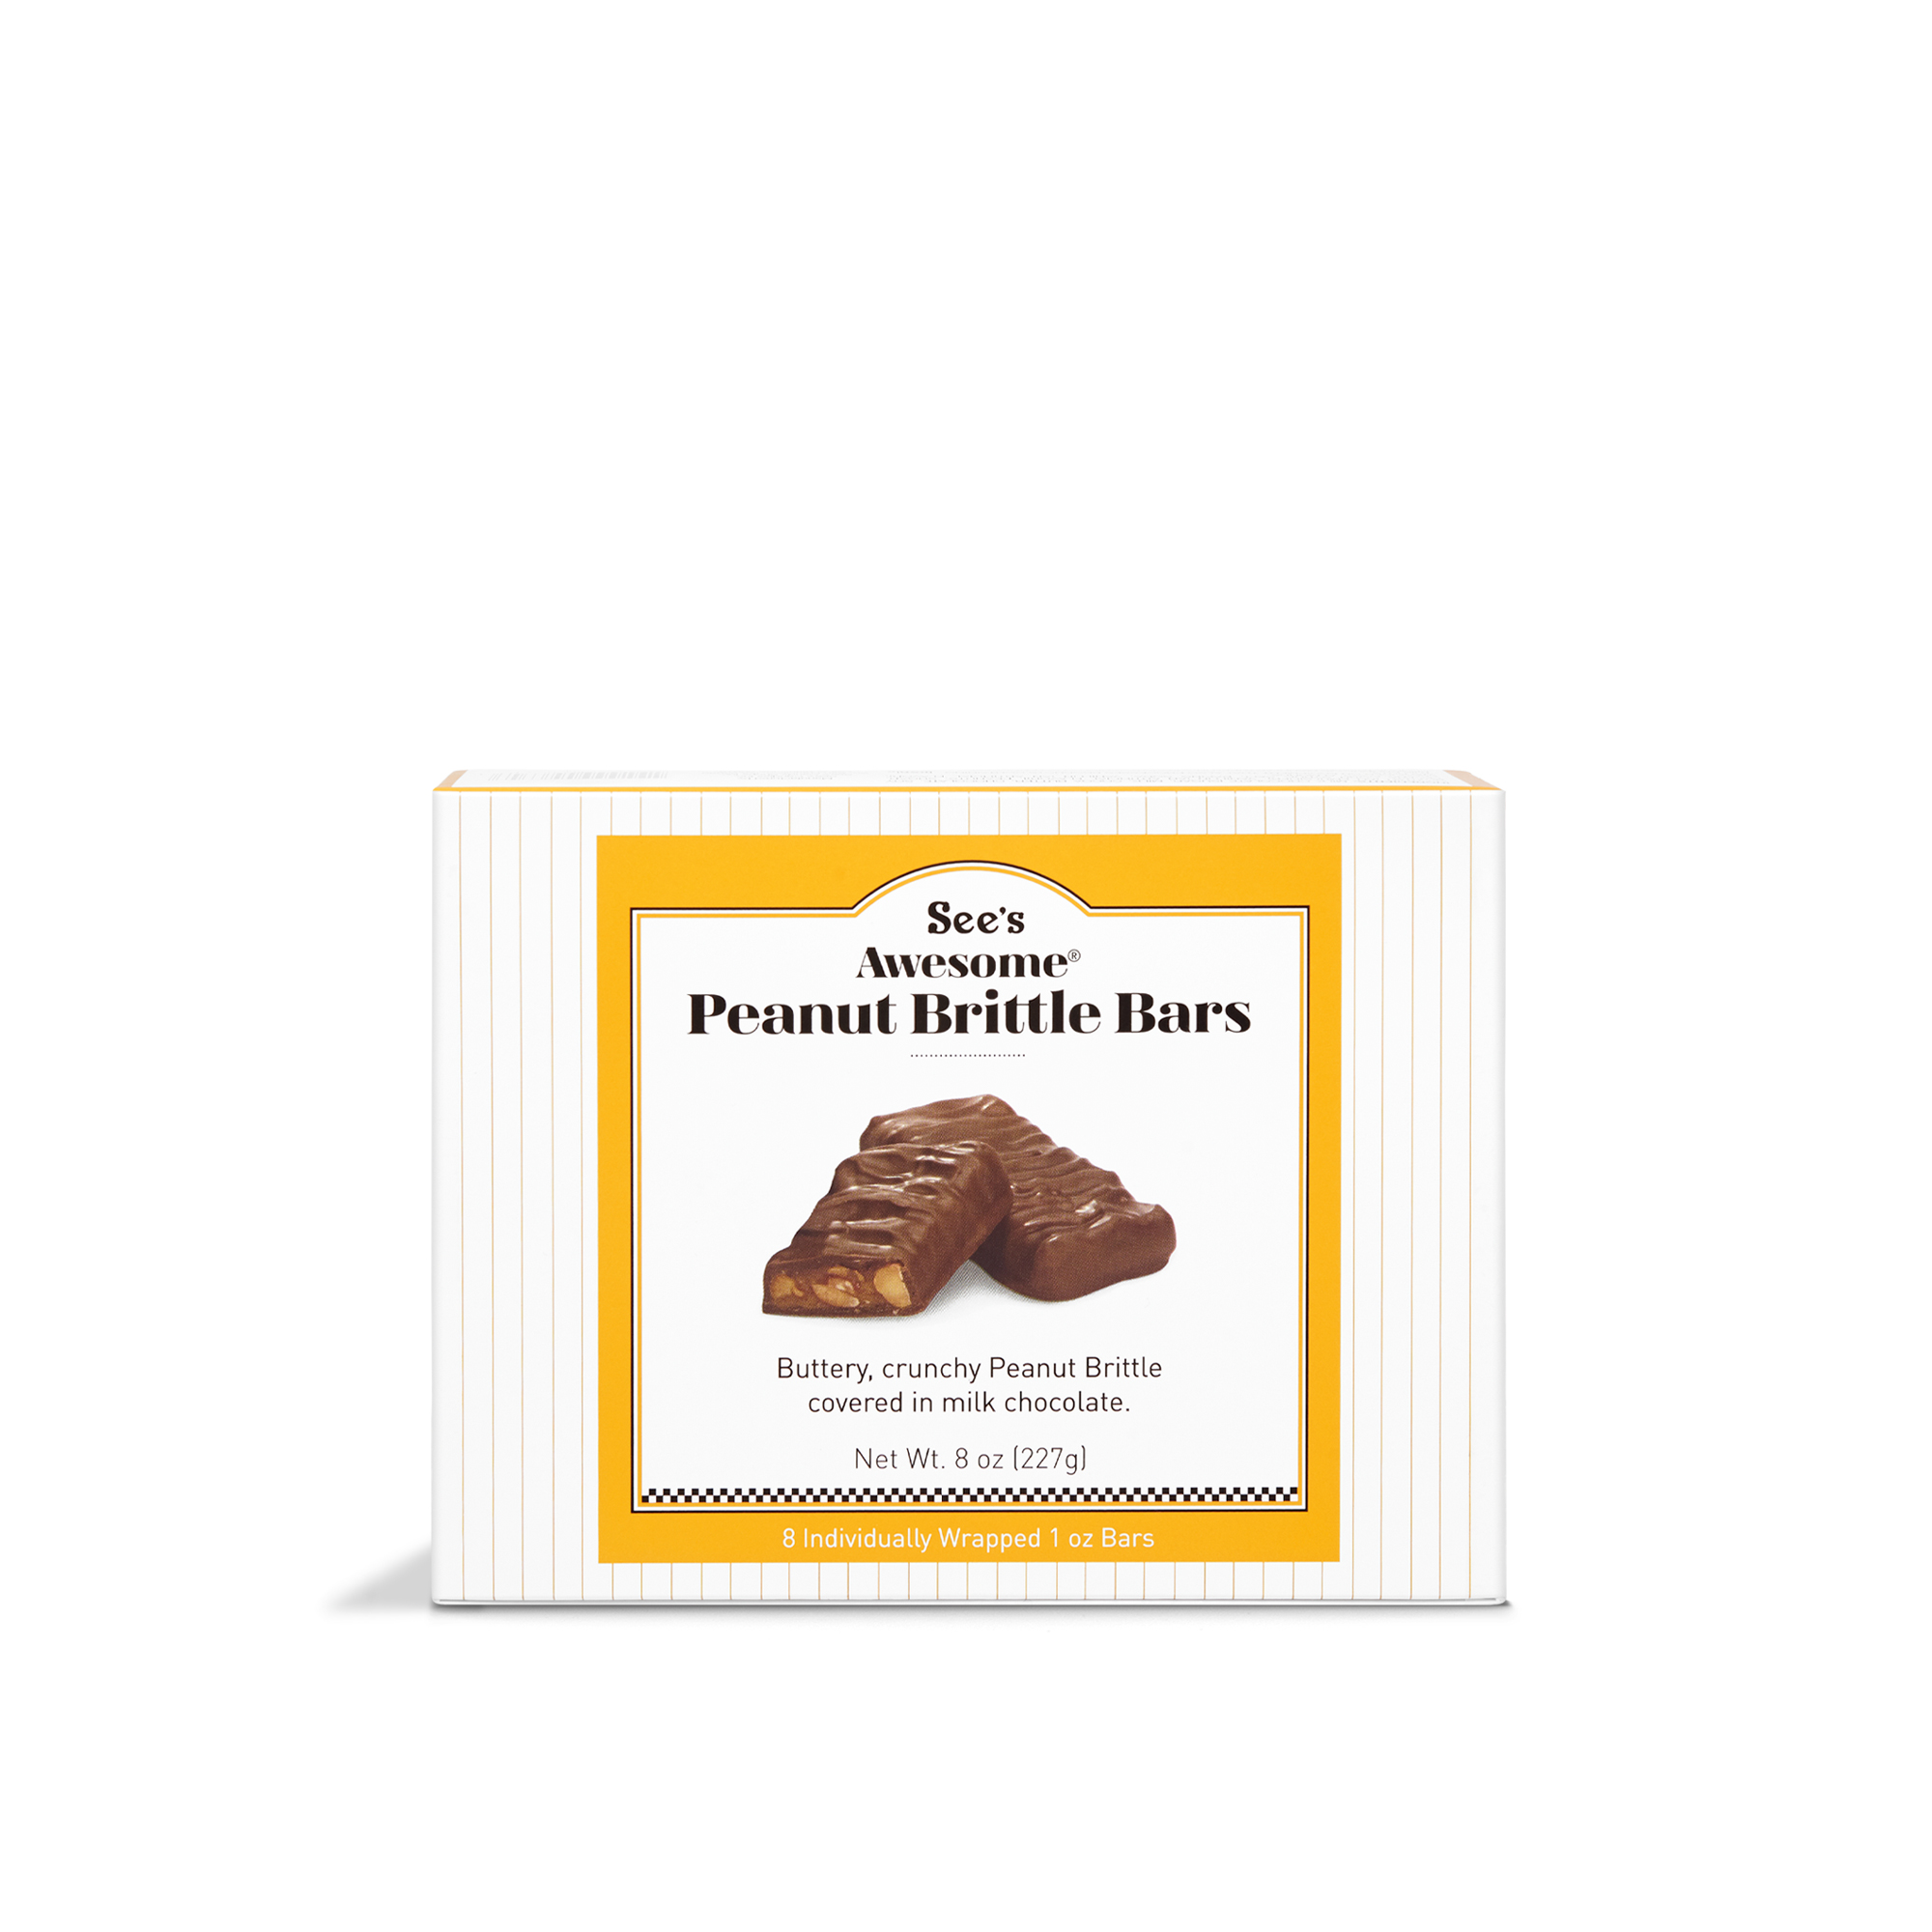 8 oz See's Awesome® Peanut Brittle Bars